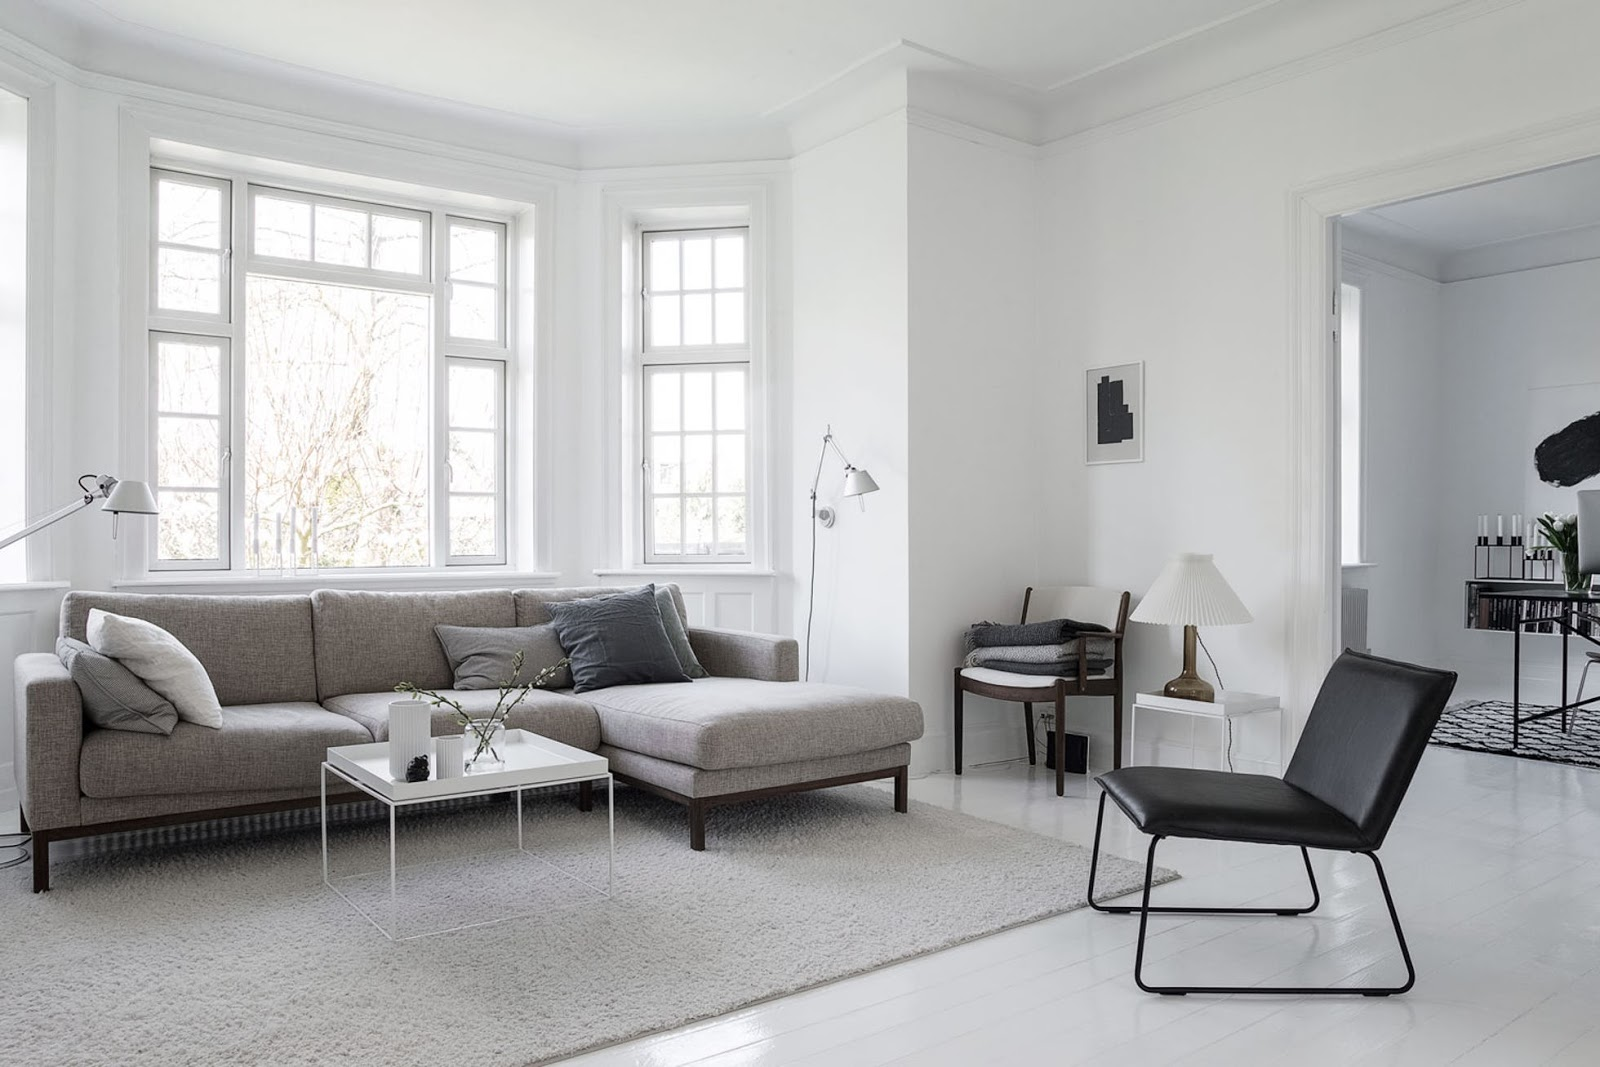 black and white interior design, nordic home, black furniture, white floor, monochrome decor